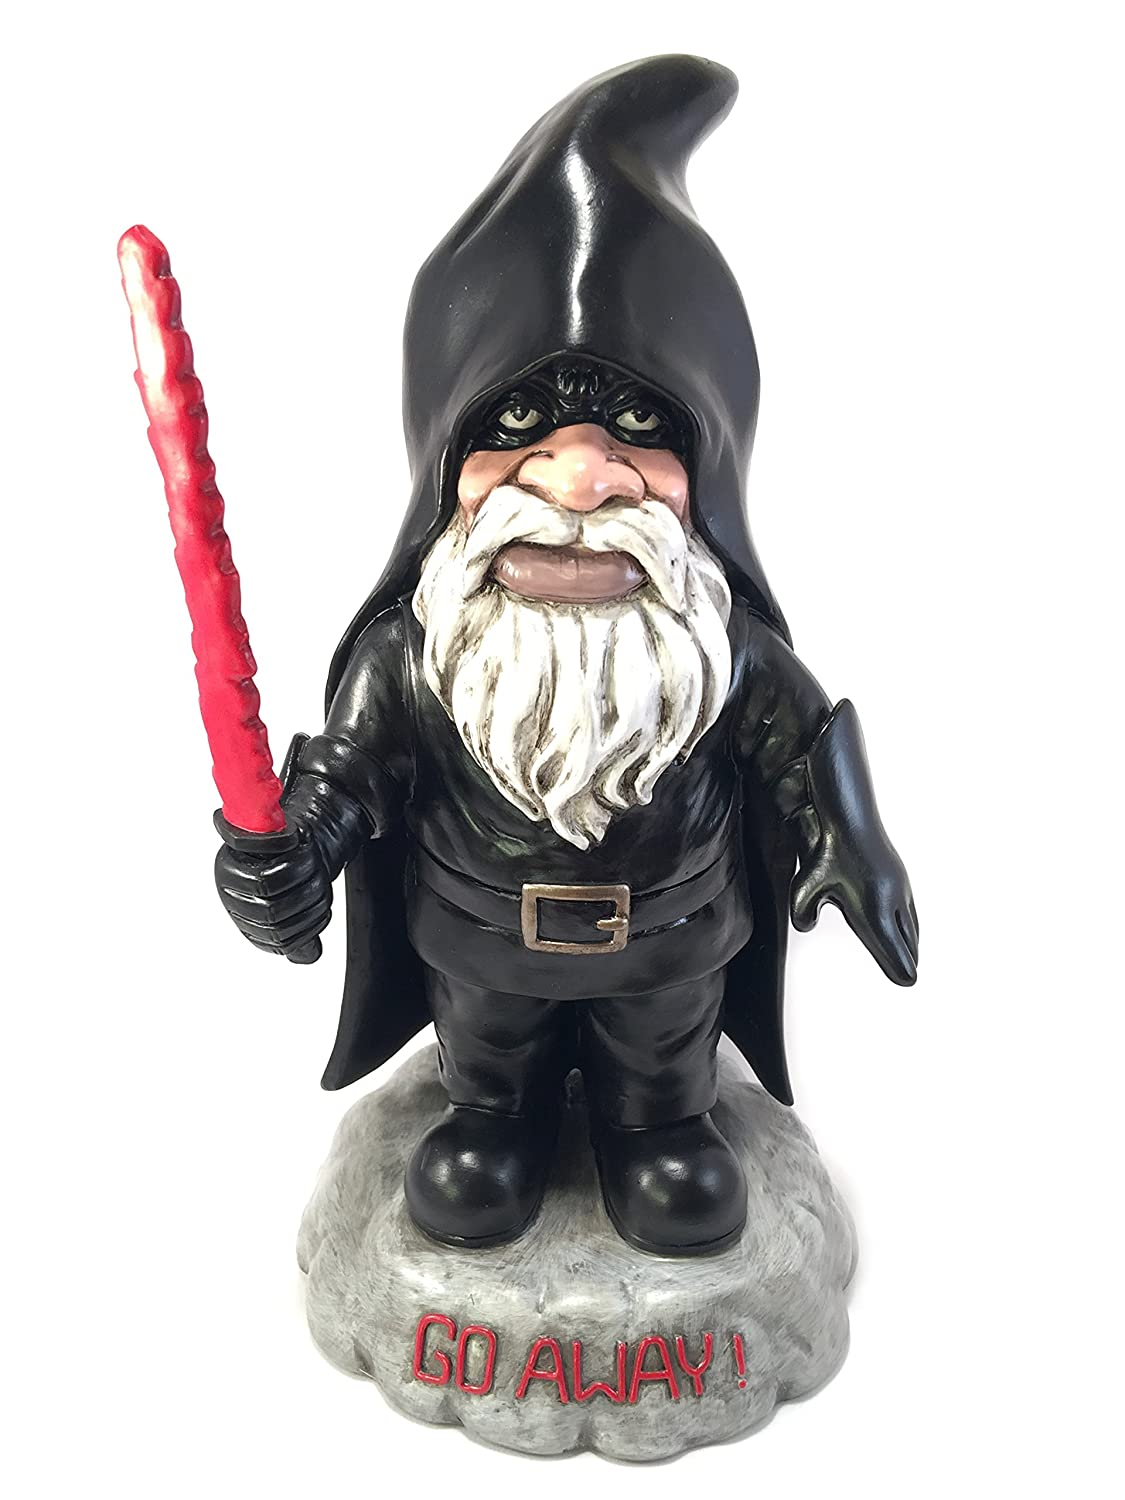 GlitZGlam Warrior Gnome - Protector of The Garden Gnomes and Guardian of The Enchanted Fairies in Gnome Land